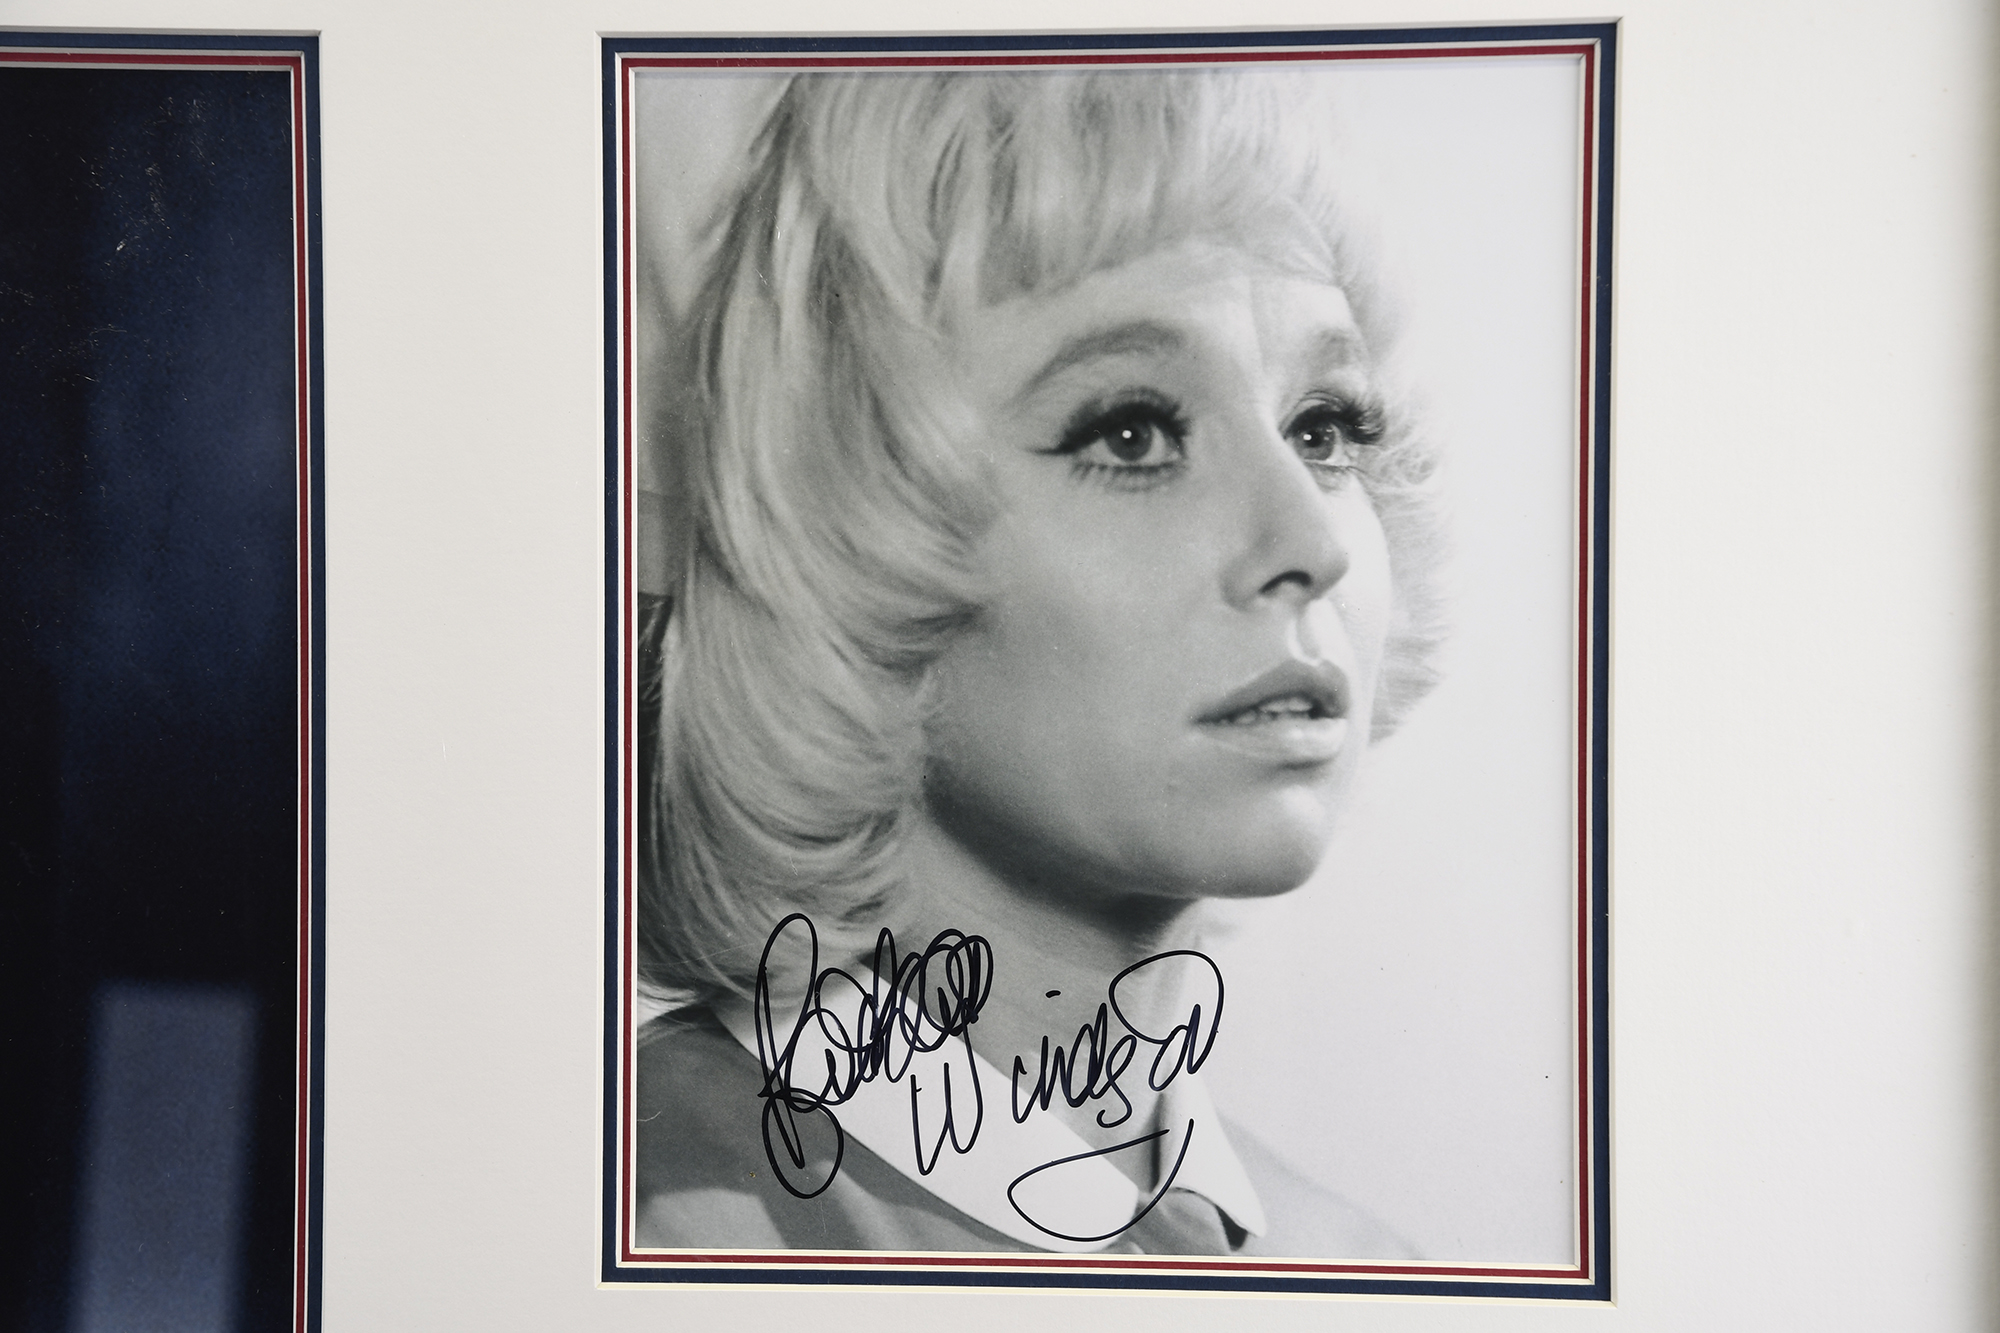 Barbara Windsor Signed Framed Memorabilia - Image 3 of 4